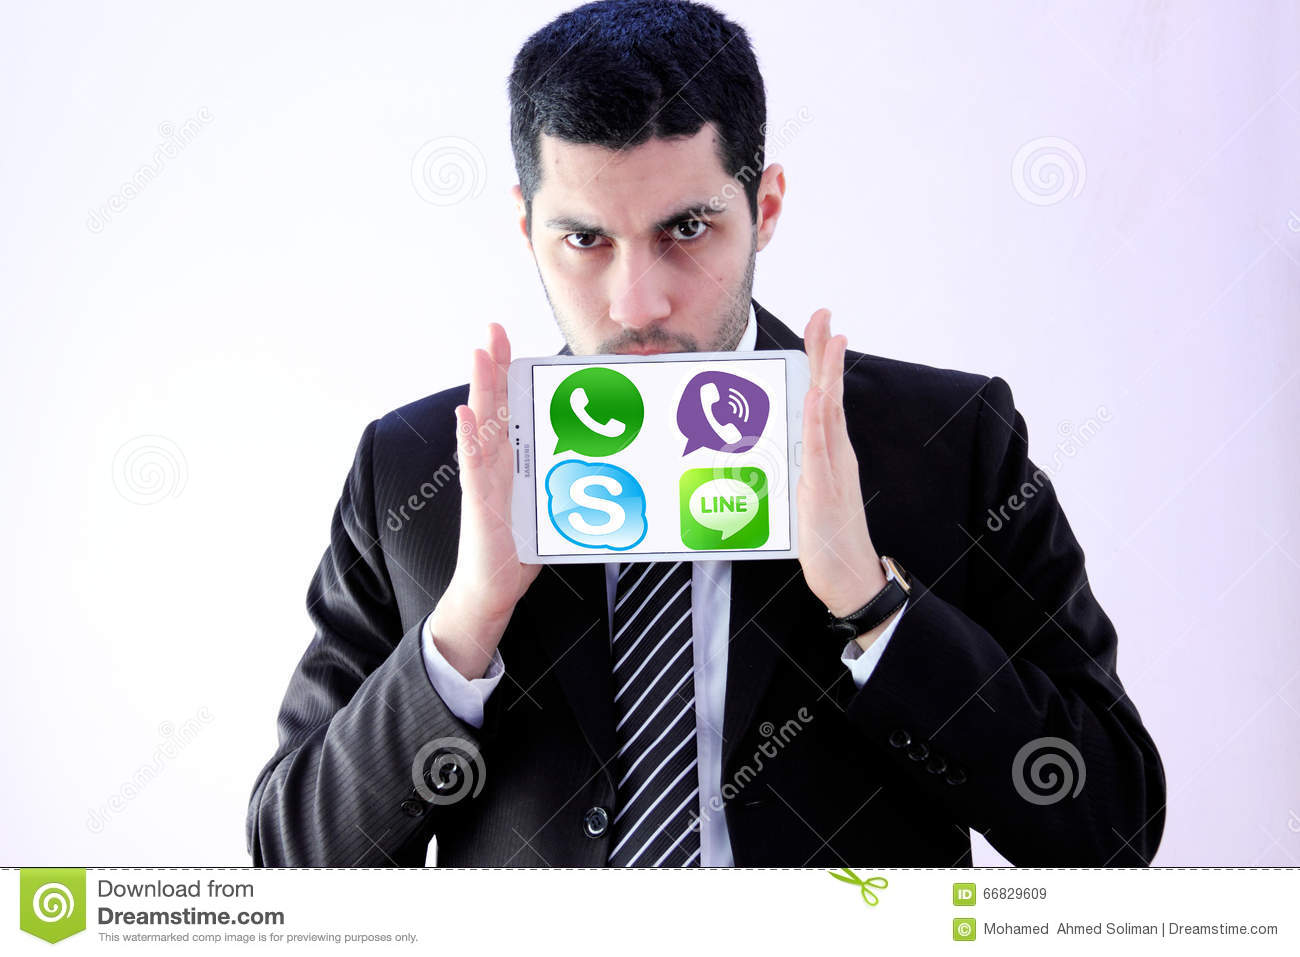 Arab business man with messenger applications logos